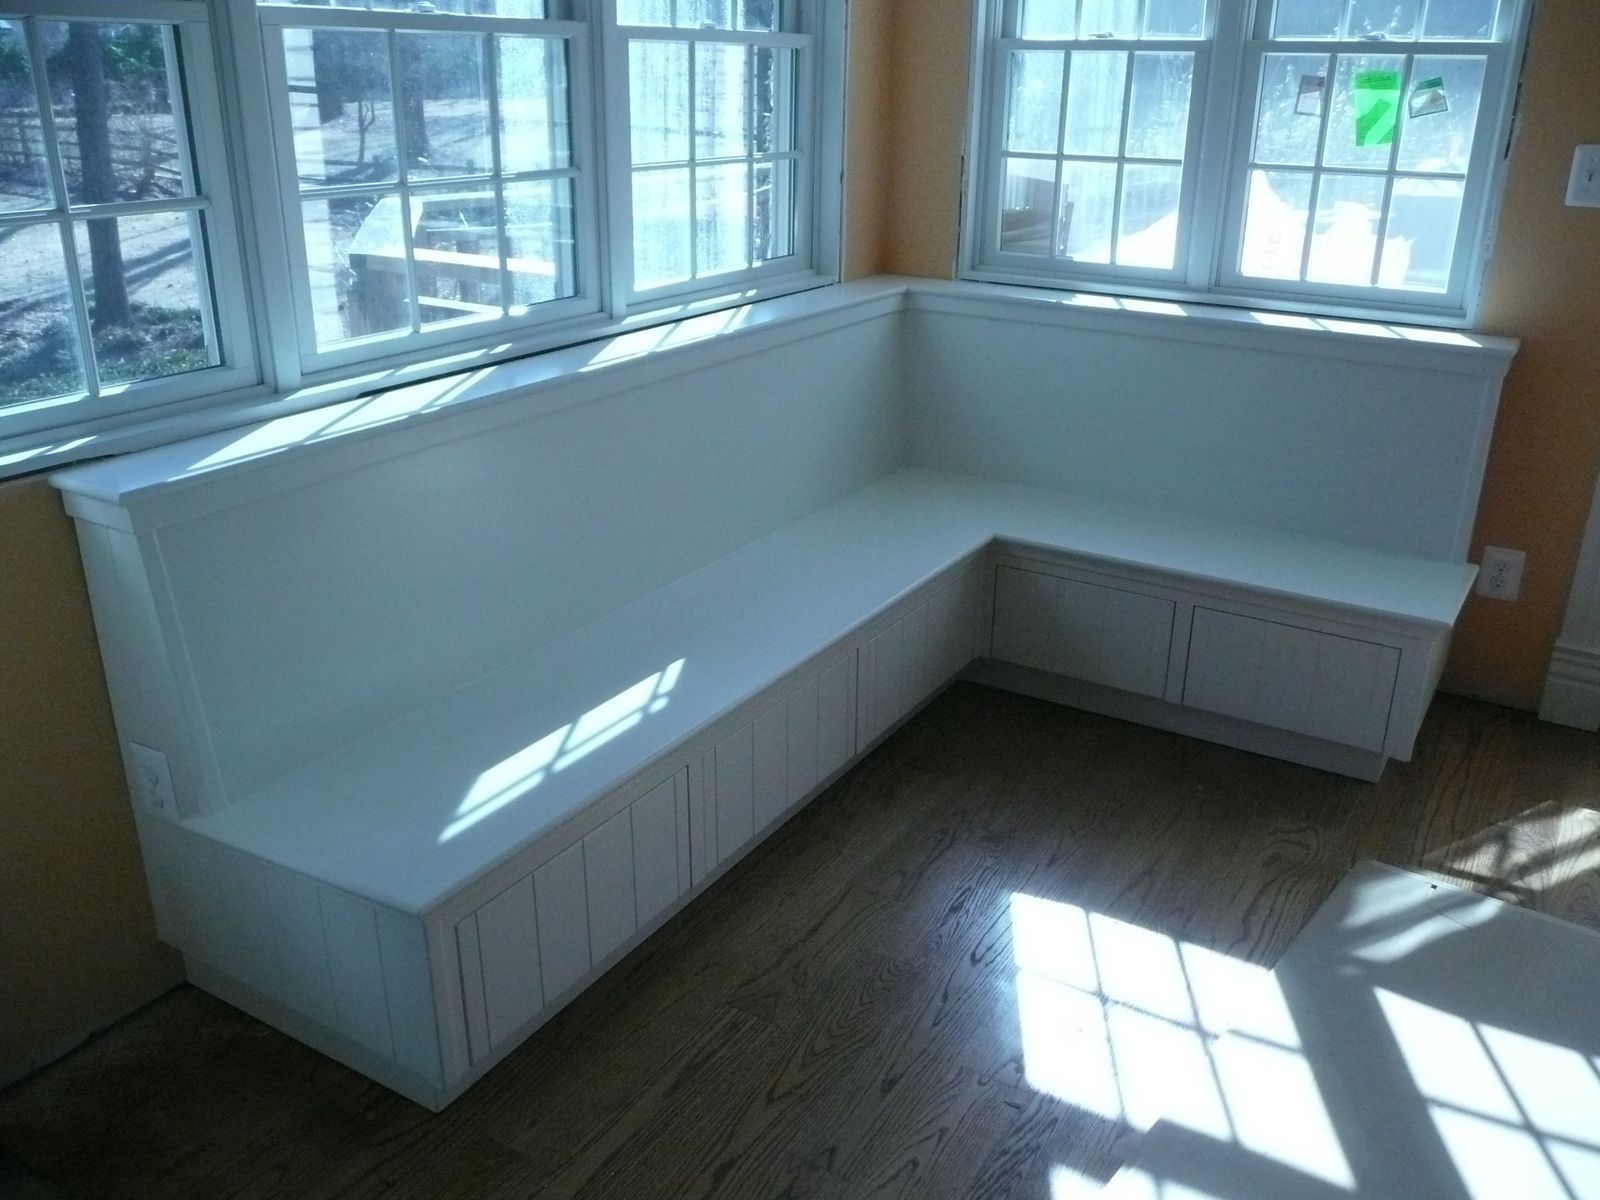 Custom Built In Benches by Sjk Woodcraft & Design | CustomMade.com